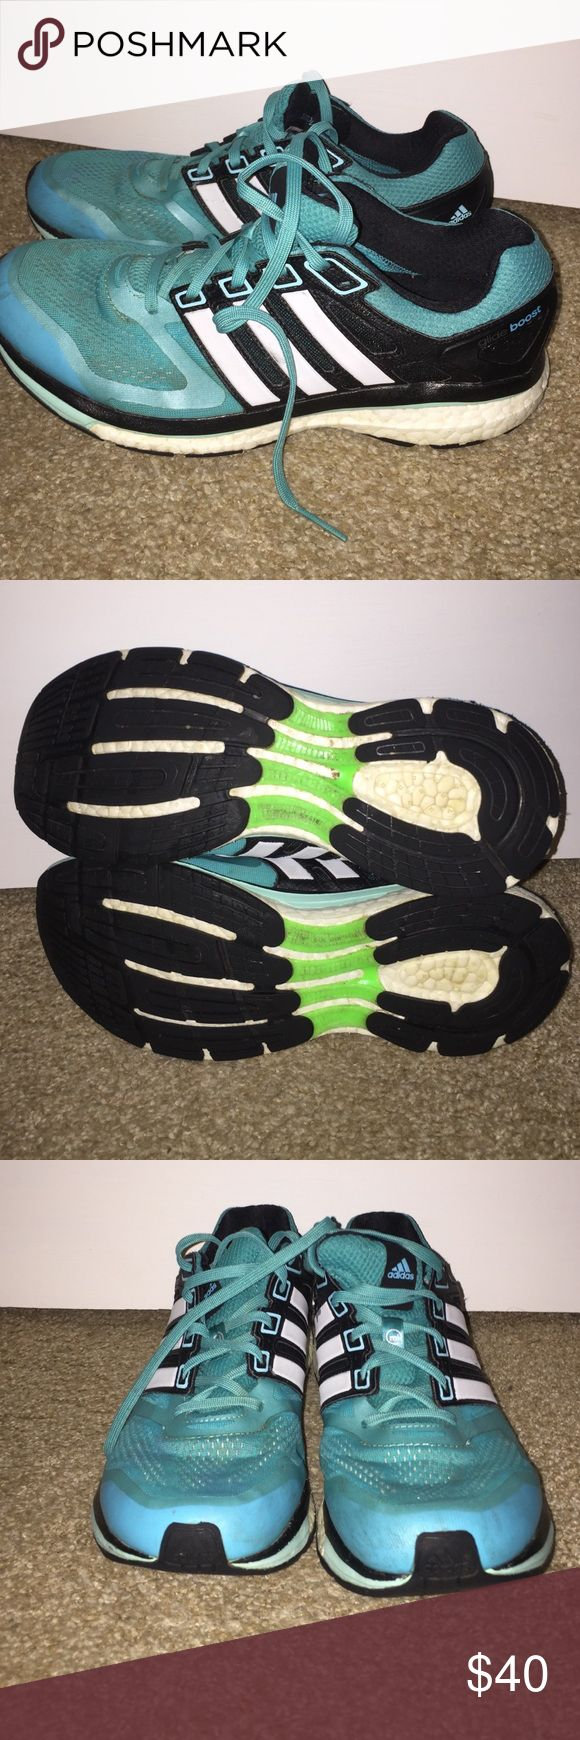 Adidas Glide Boost shoes Only worn a few times, teal colored with black accents. Women's 9.5. Adidas Shoes Athletic Shoes